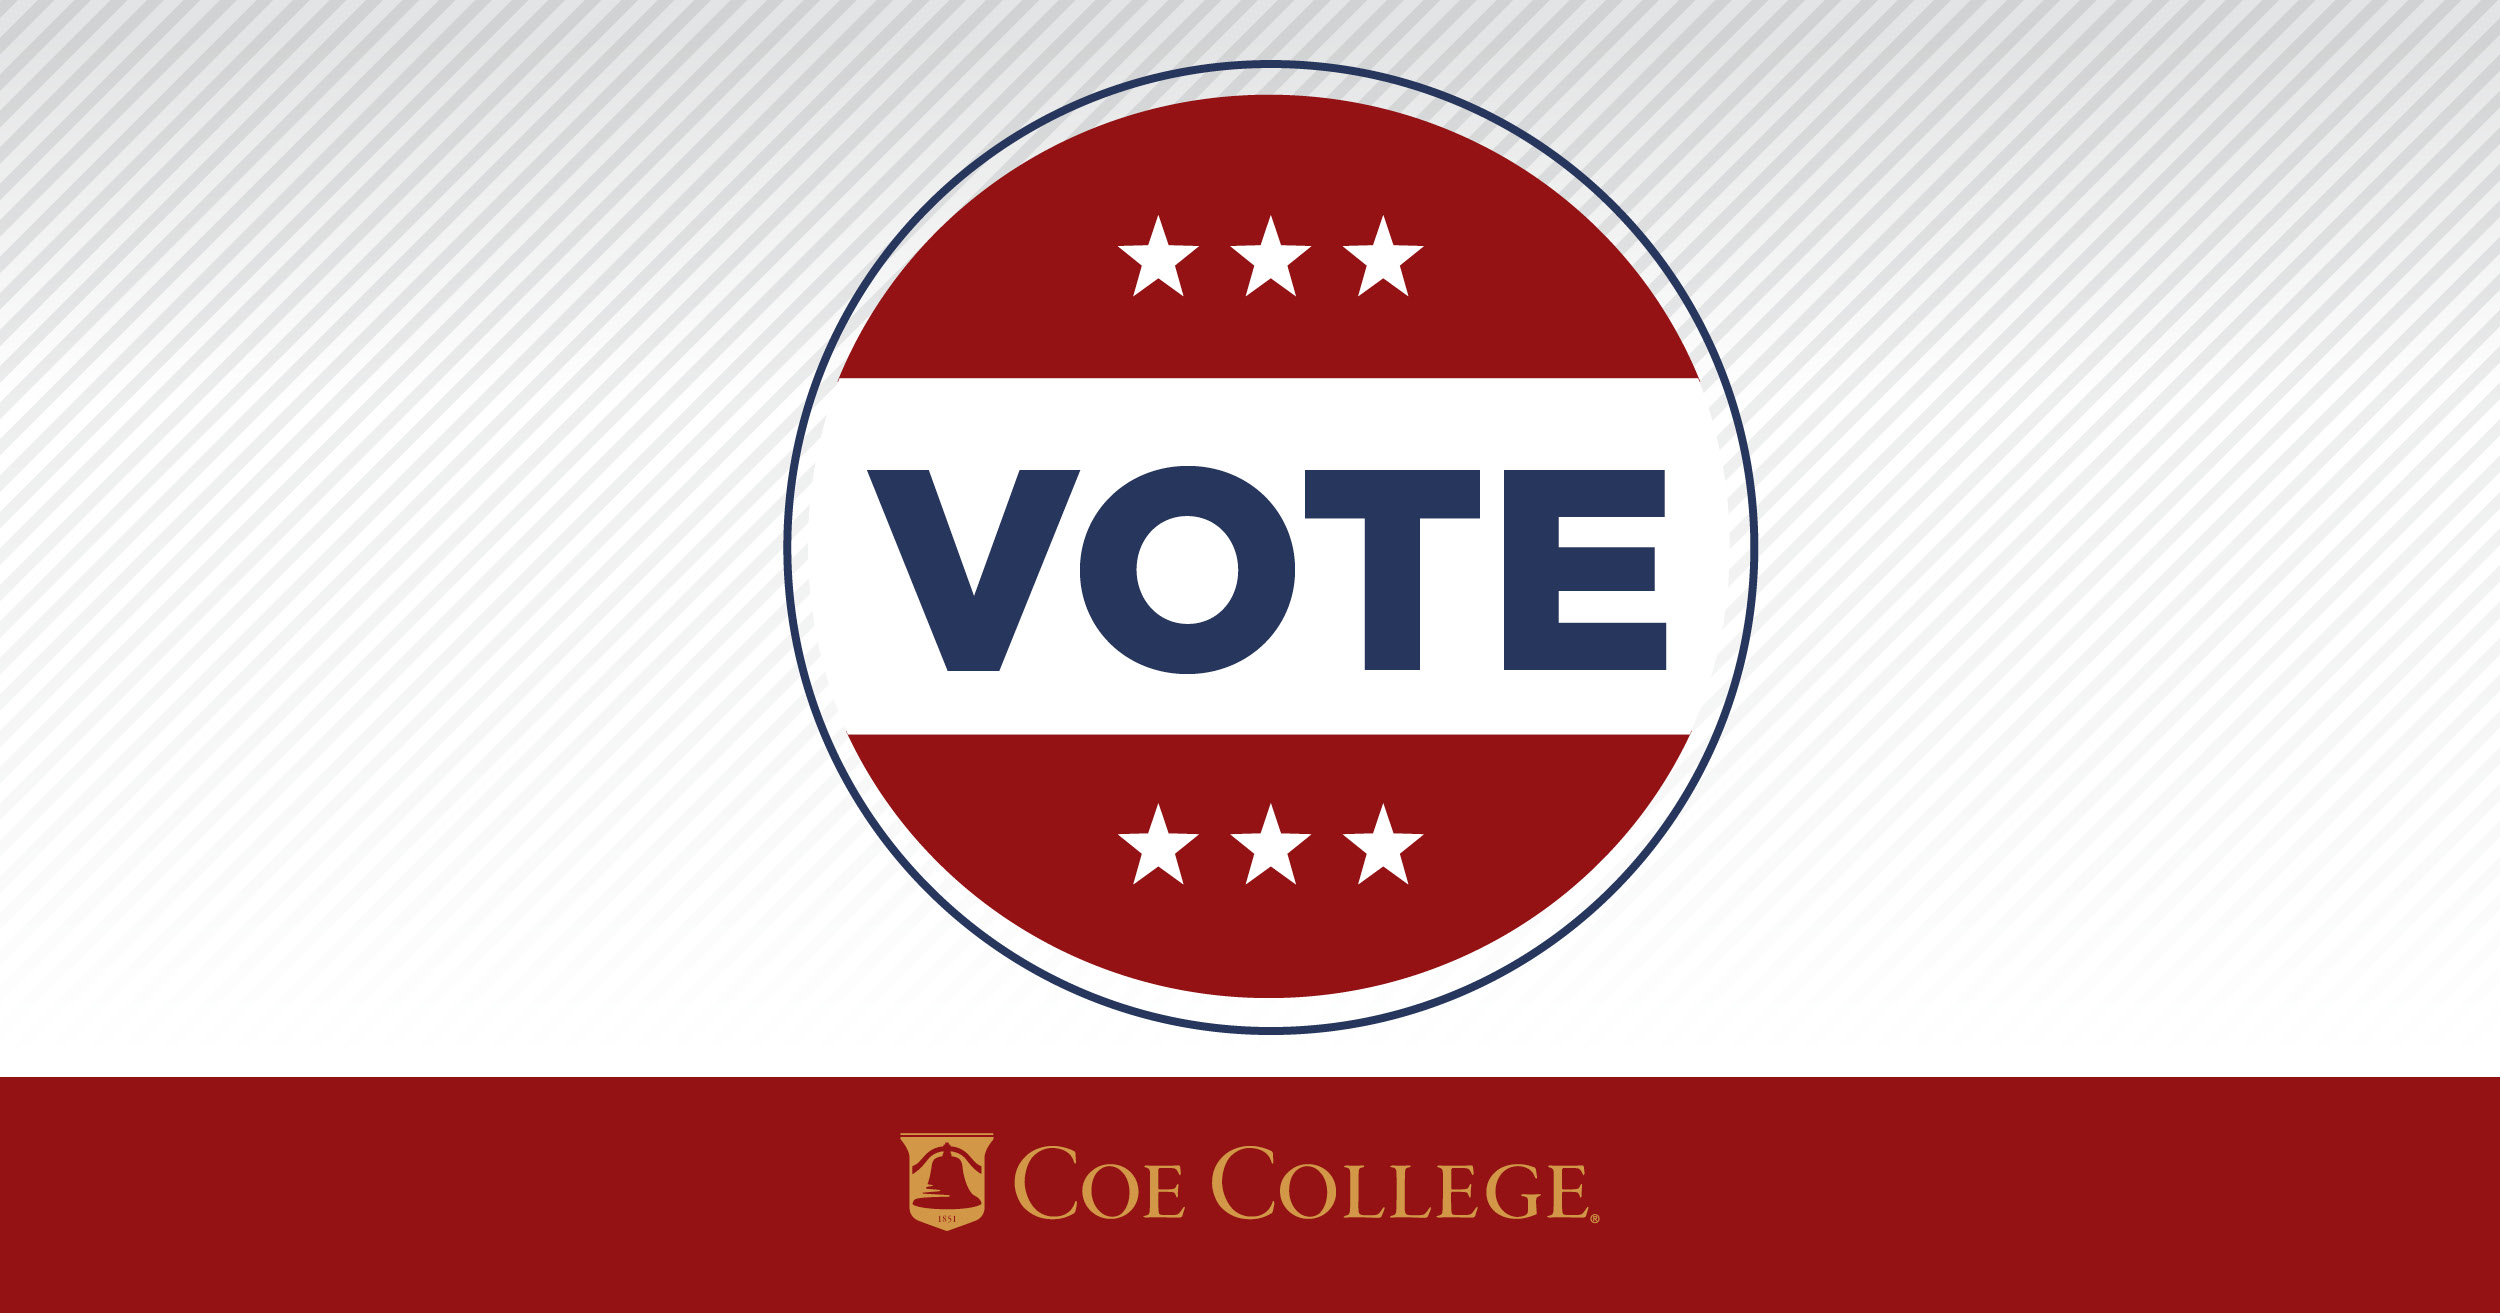 Coe College employees will get paid time off to staff poll sites